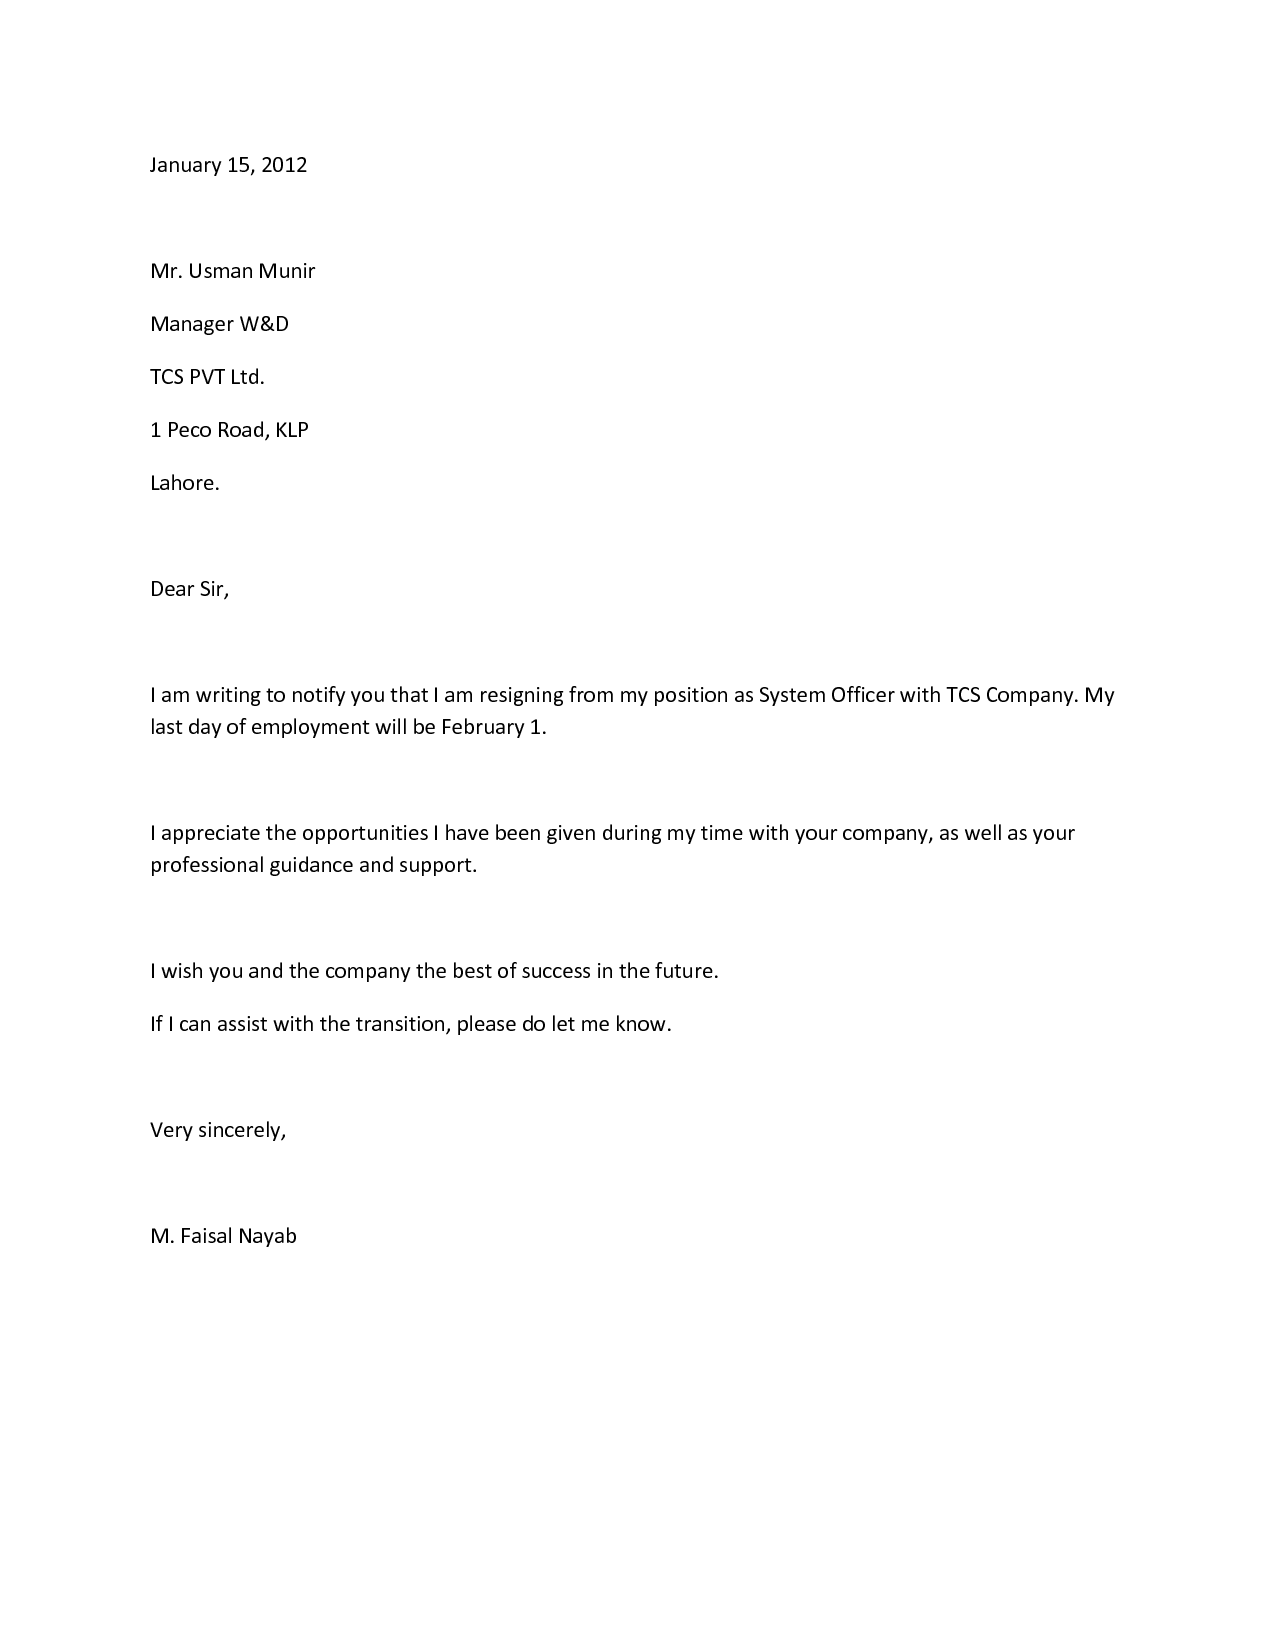 HOW TO WRITE A PROPER RESIGNATION LETTER IMAGES – Write a Resign Letter